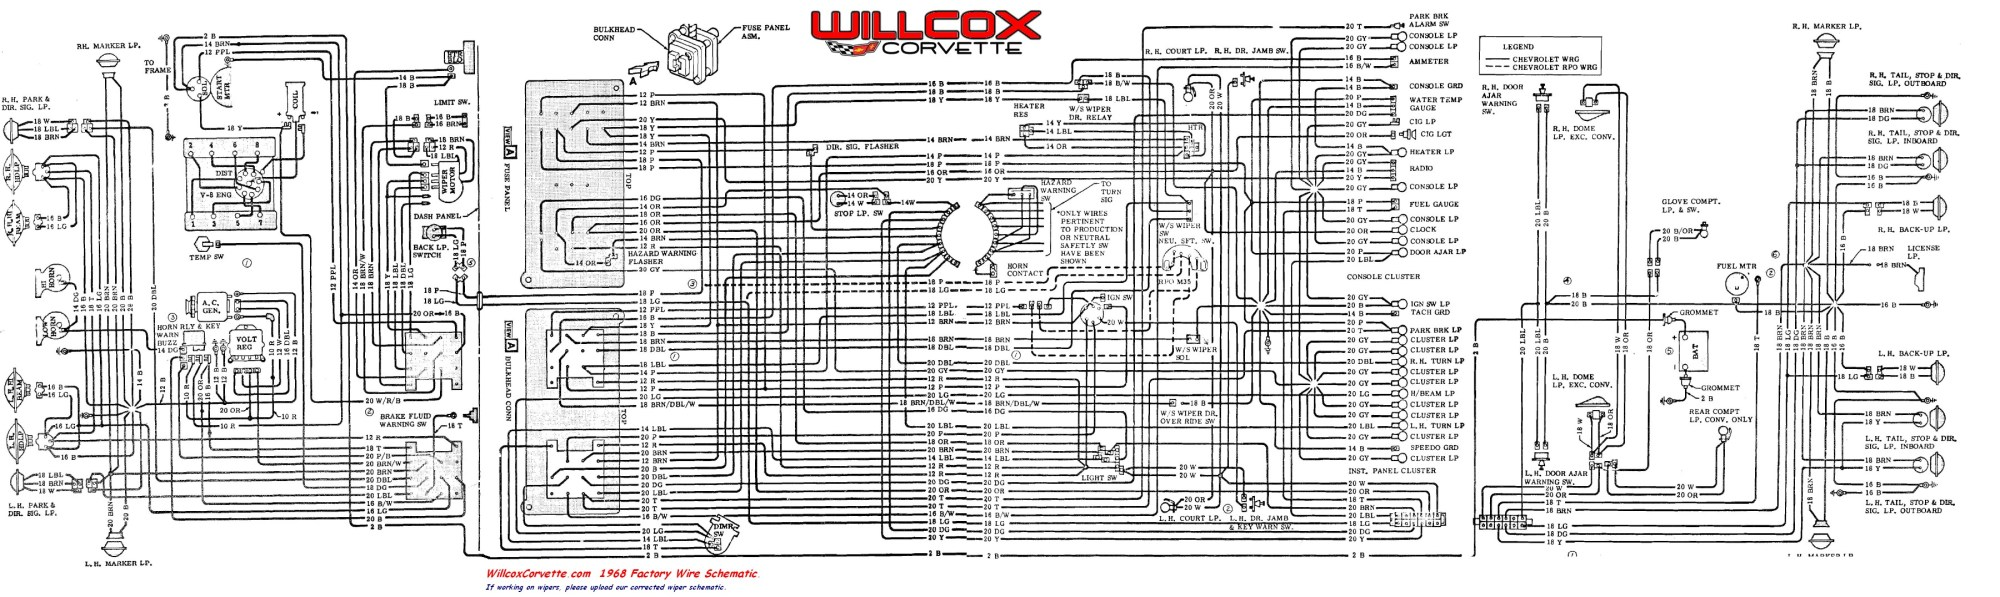 hight resolution of 1969 corvette wiring harness wiring diagram 1968 corvette wiring harness on 1982 corvette engine wiring harness